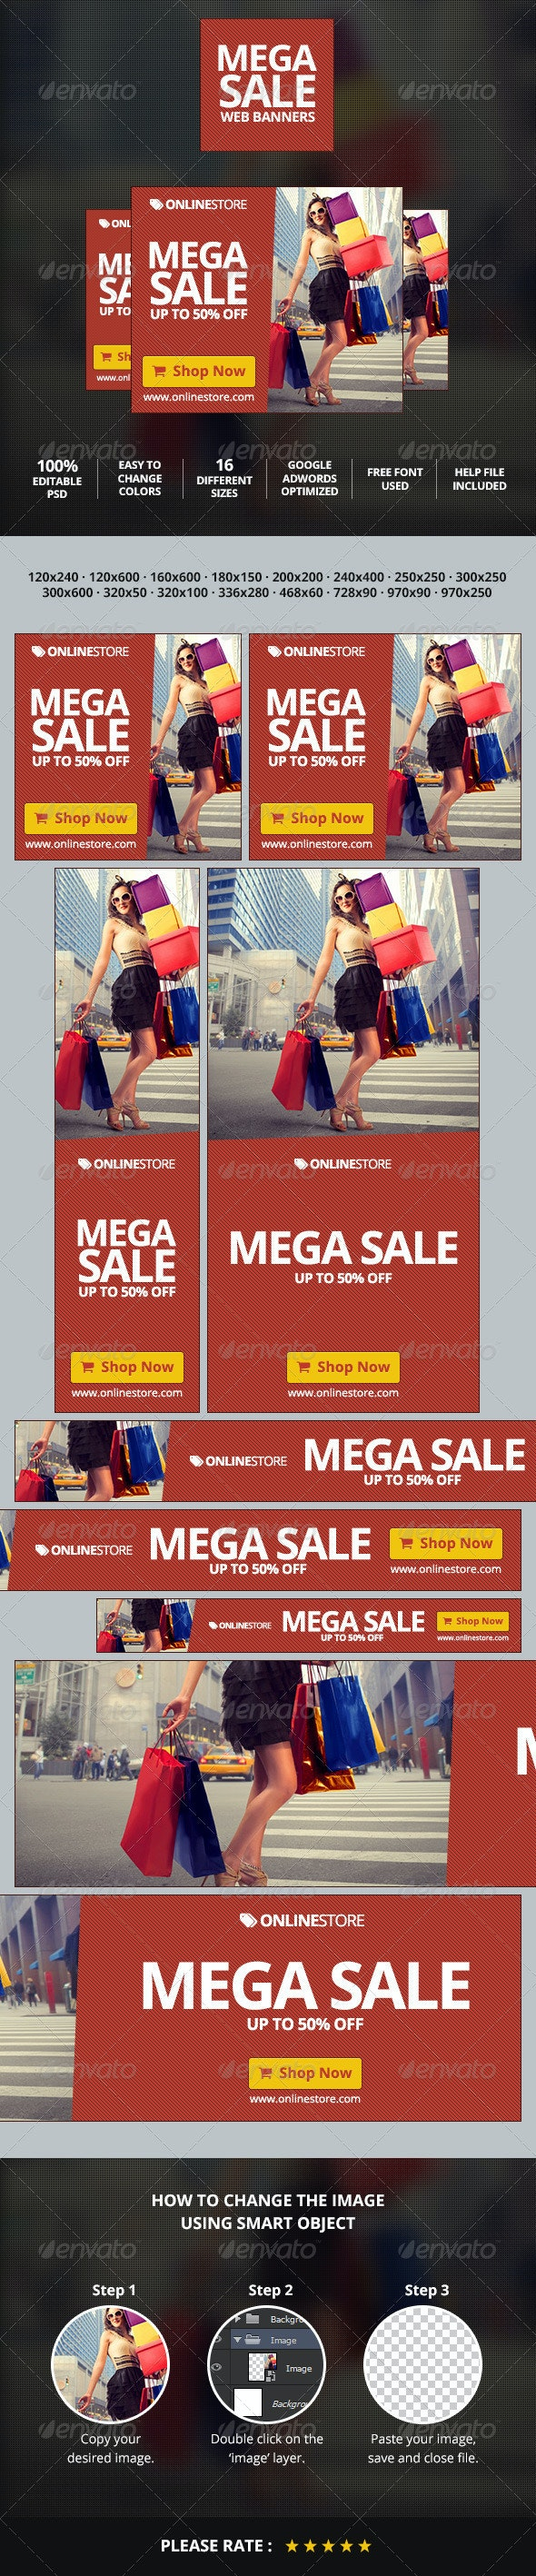 Mega Sale Web Ad Marketing Banners - Banners & Ads Web Elements